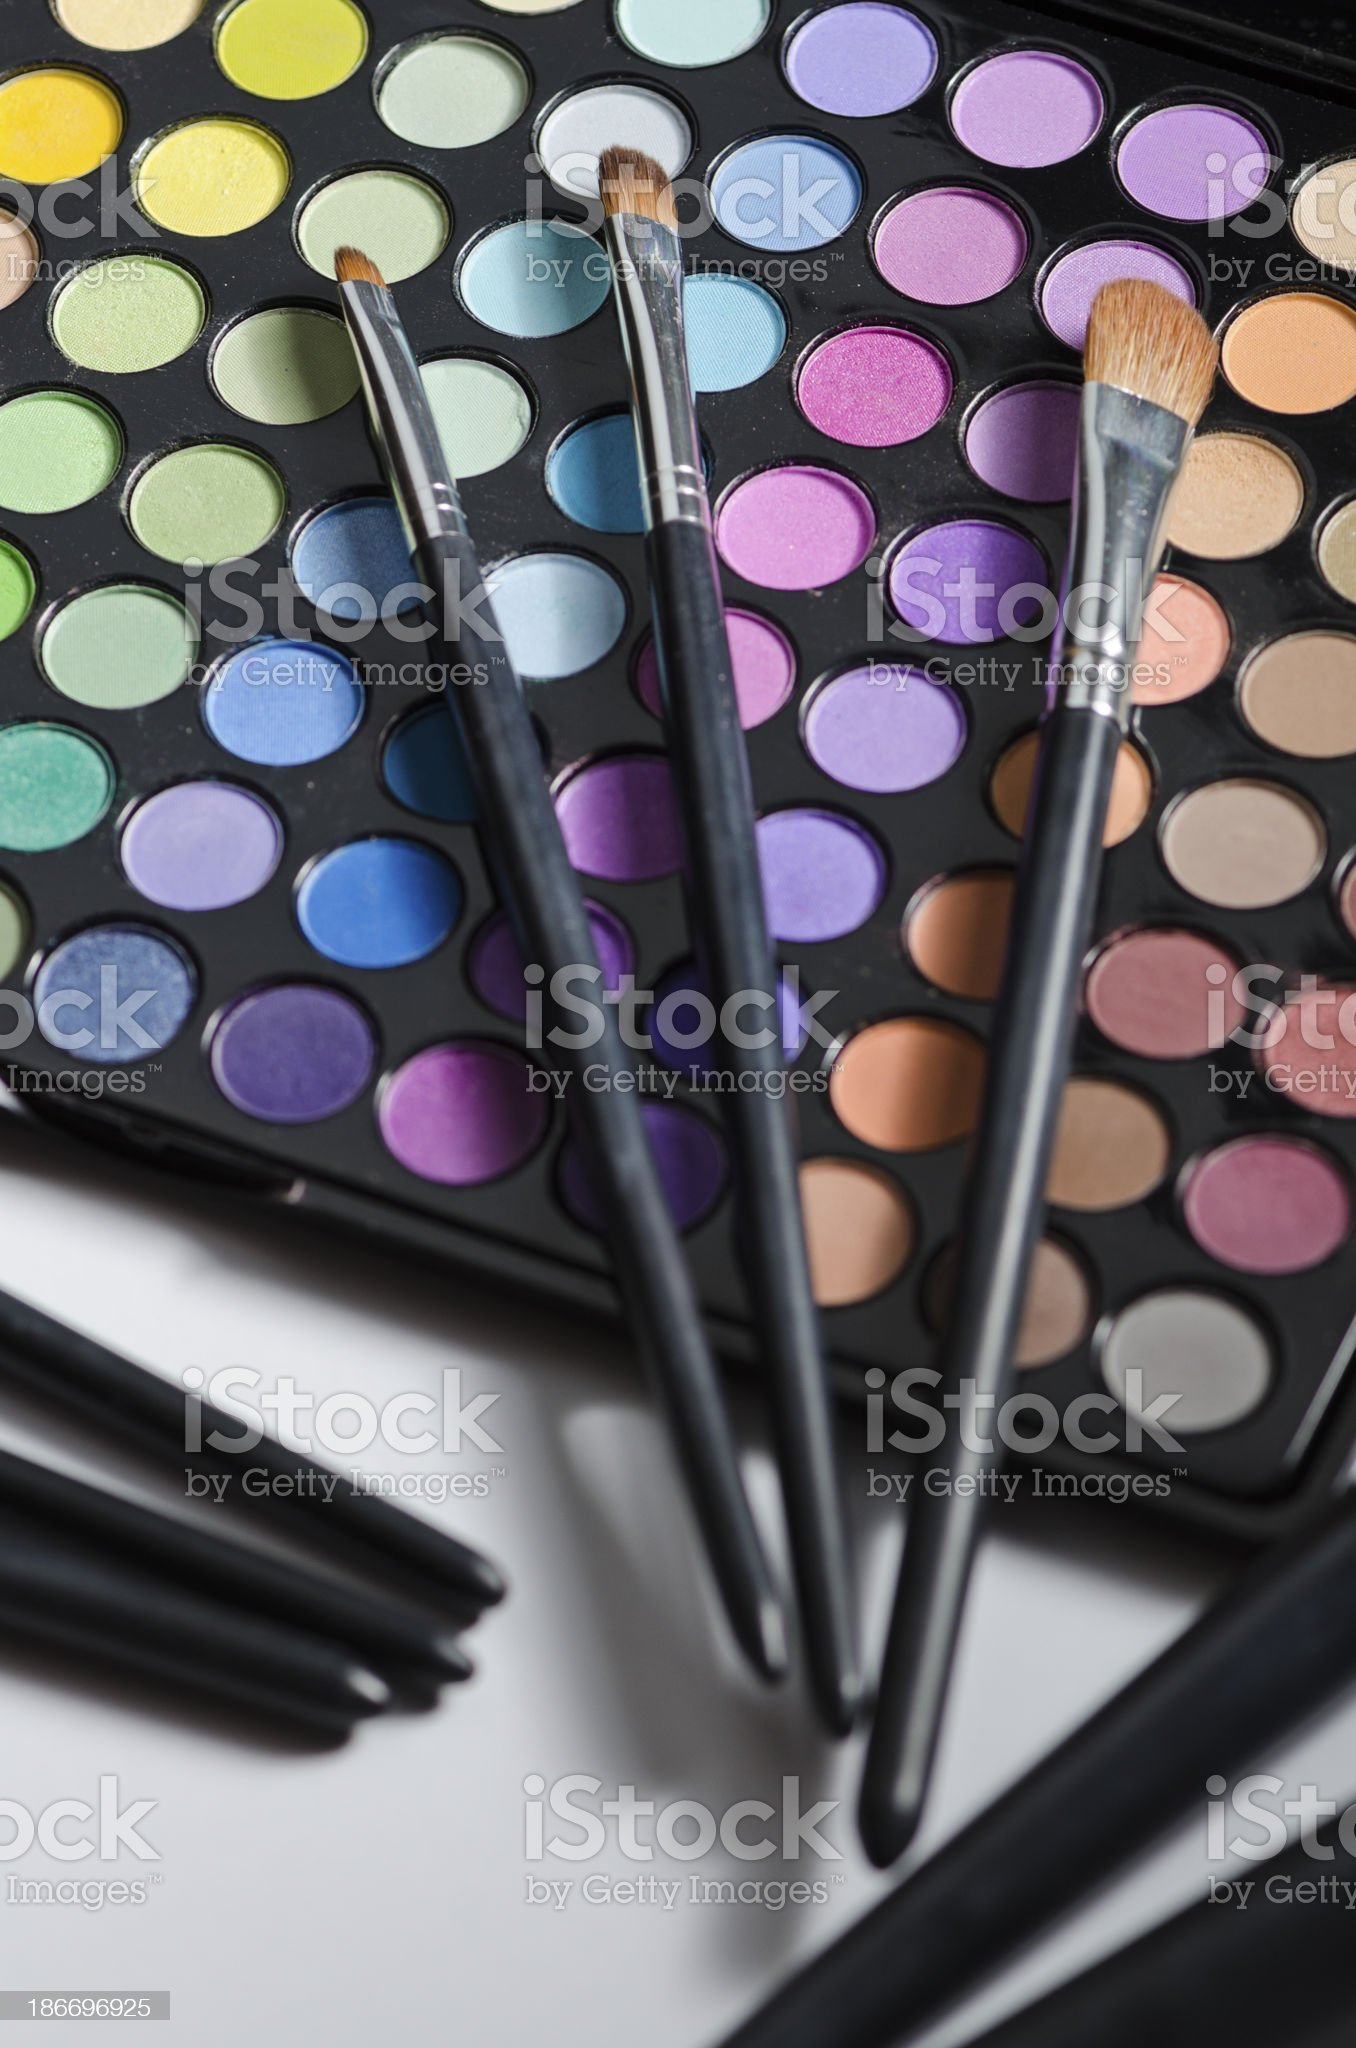 Multi colored make-up and brushes royalty-free stock photo